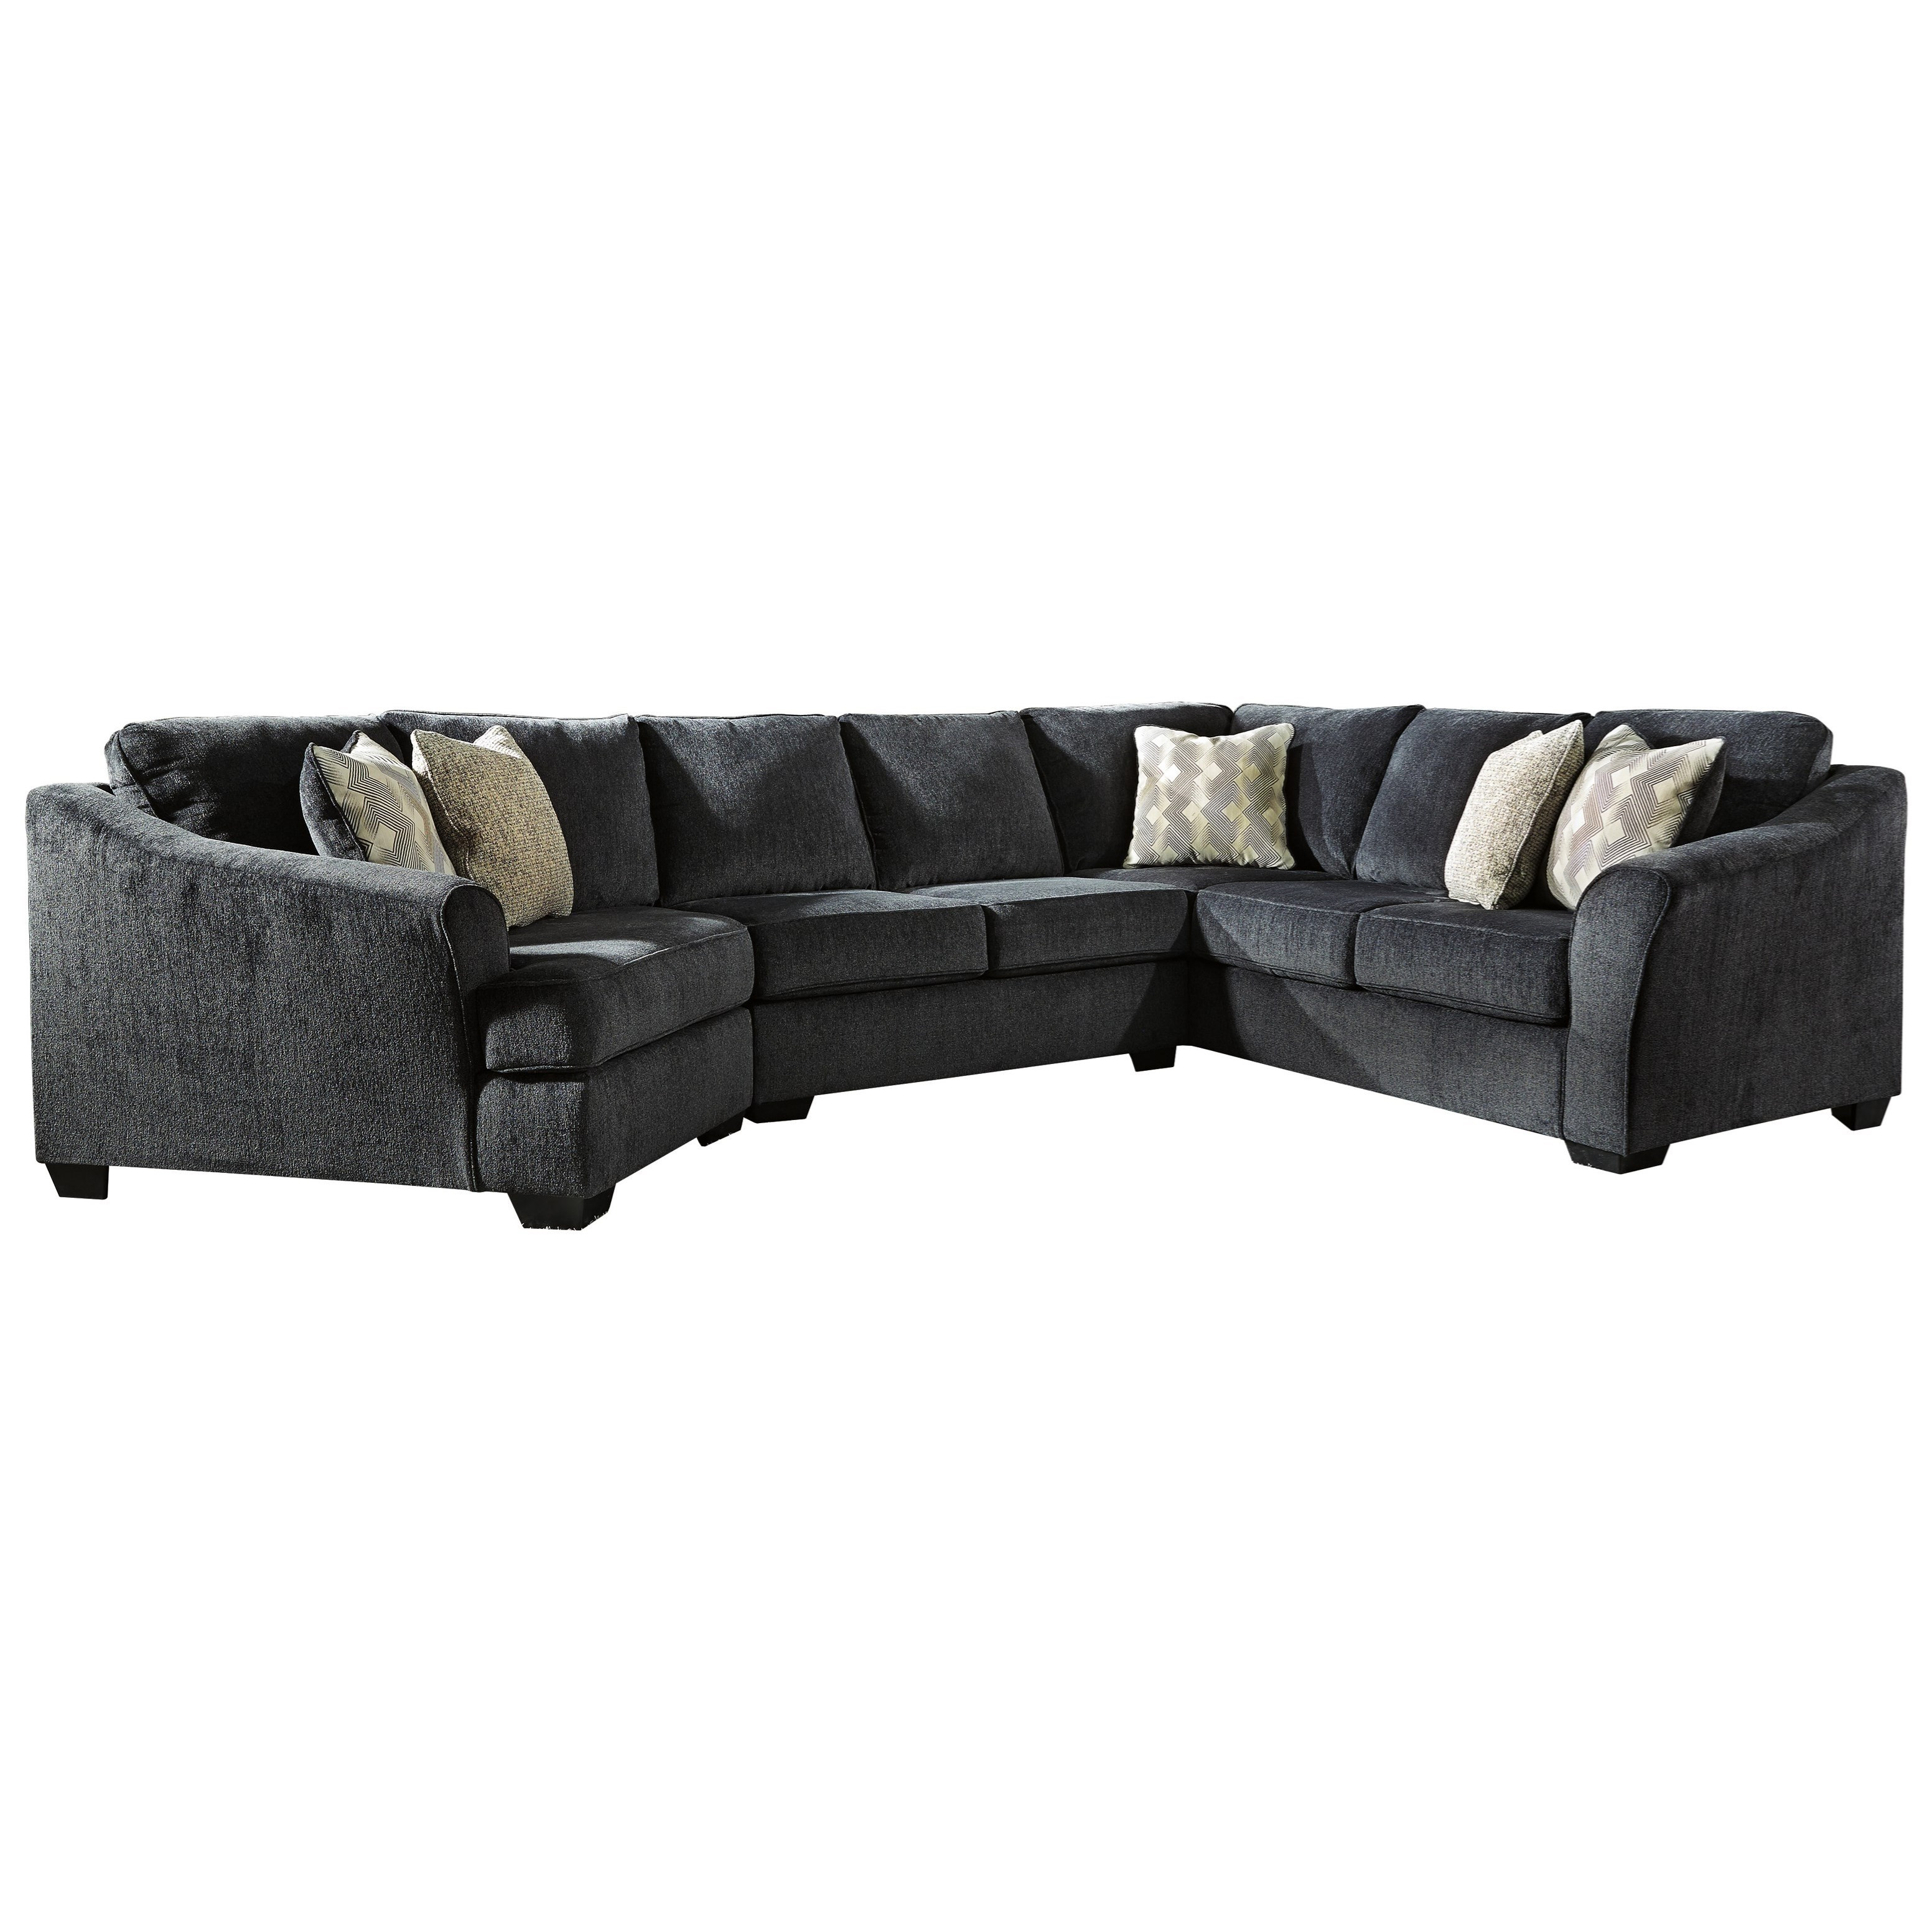 Eltmann 3-Piece Sectional with Left Cuddler by Ashley (Signature Design) at Johnny Janosik